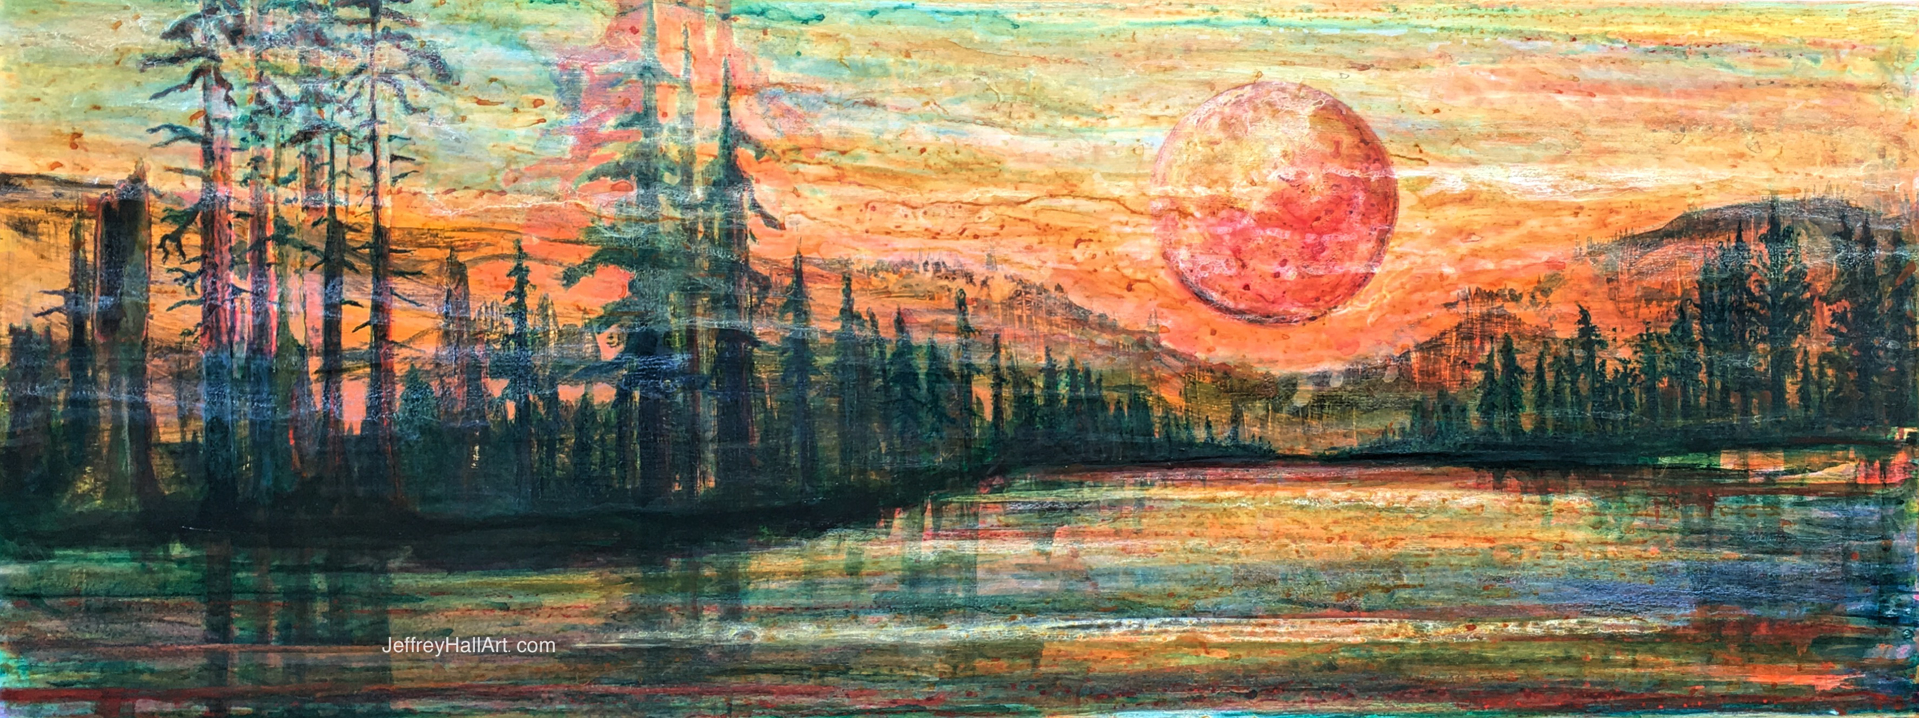 Red Moon by Jeff Hall (Forest Grove, OR)